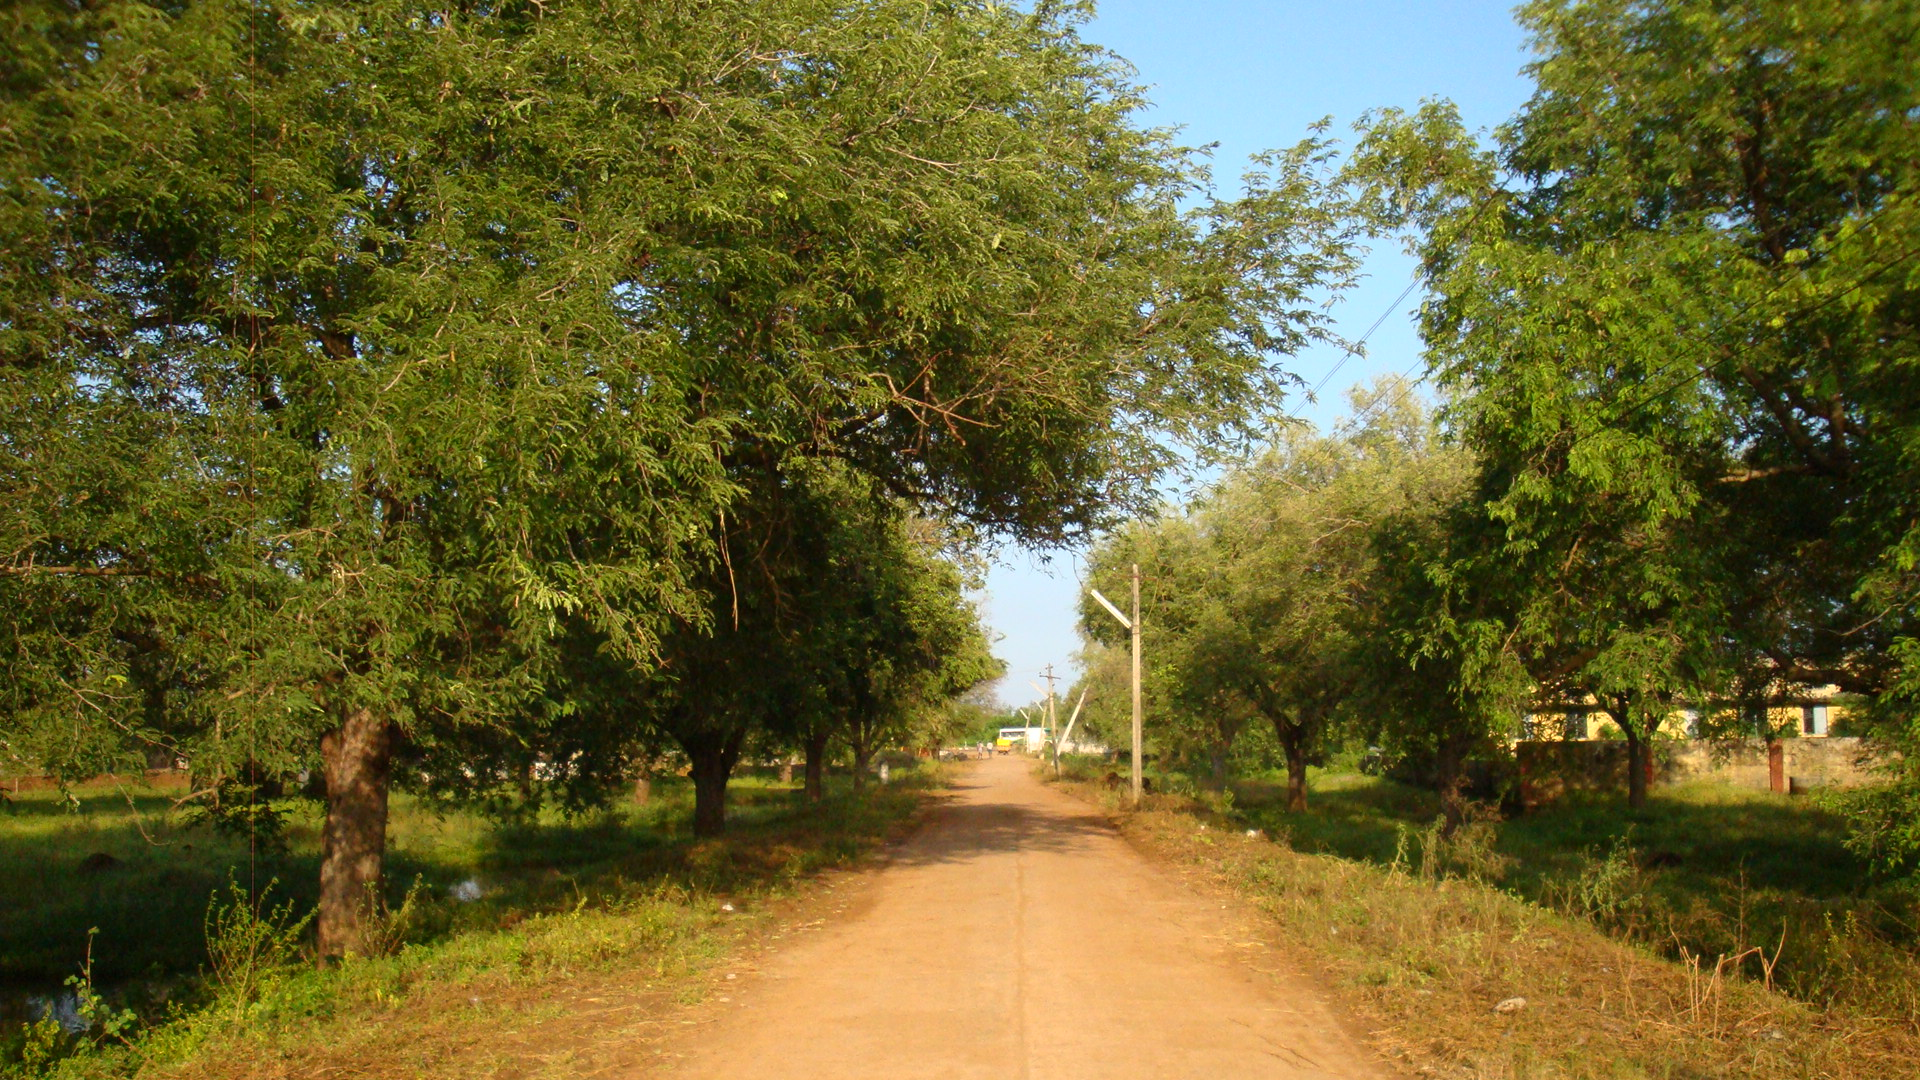 File:TNP village road with Tamarind trees on both sides.JPG ...